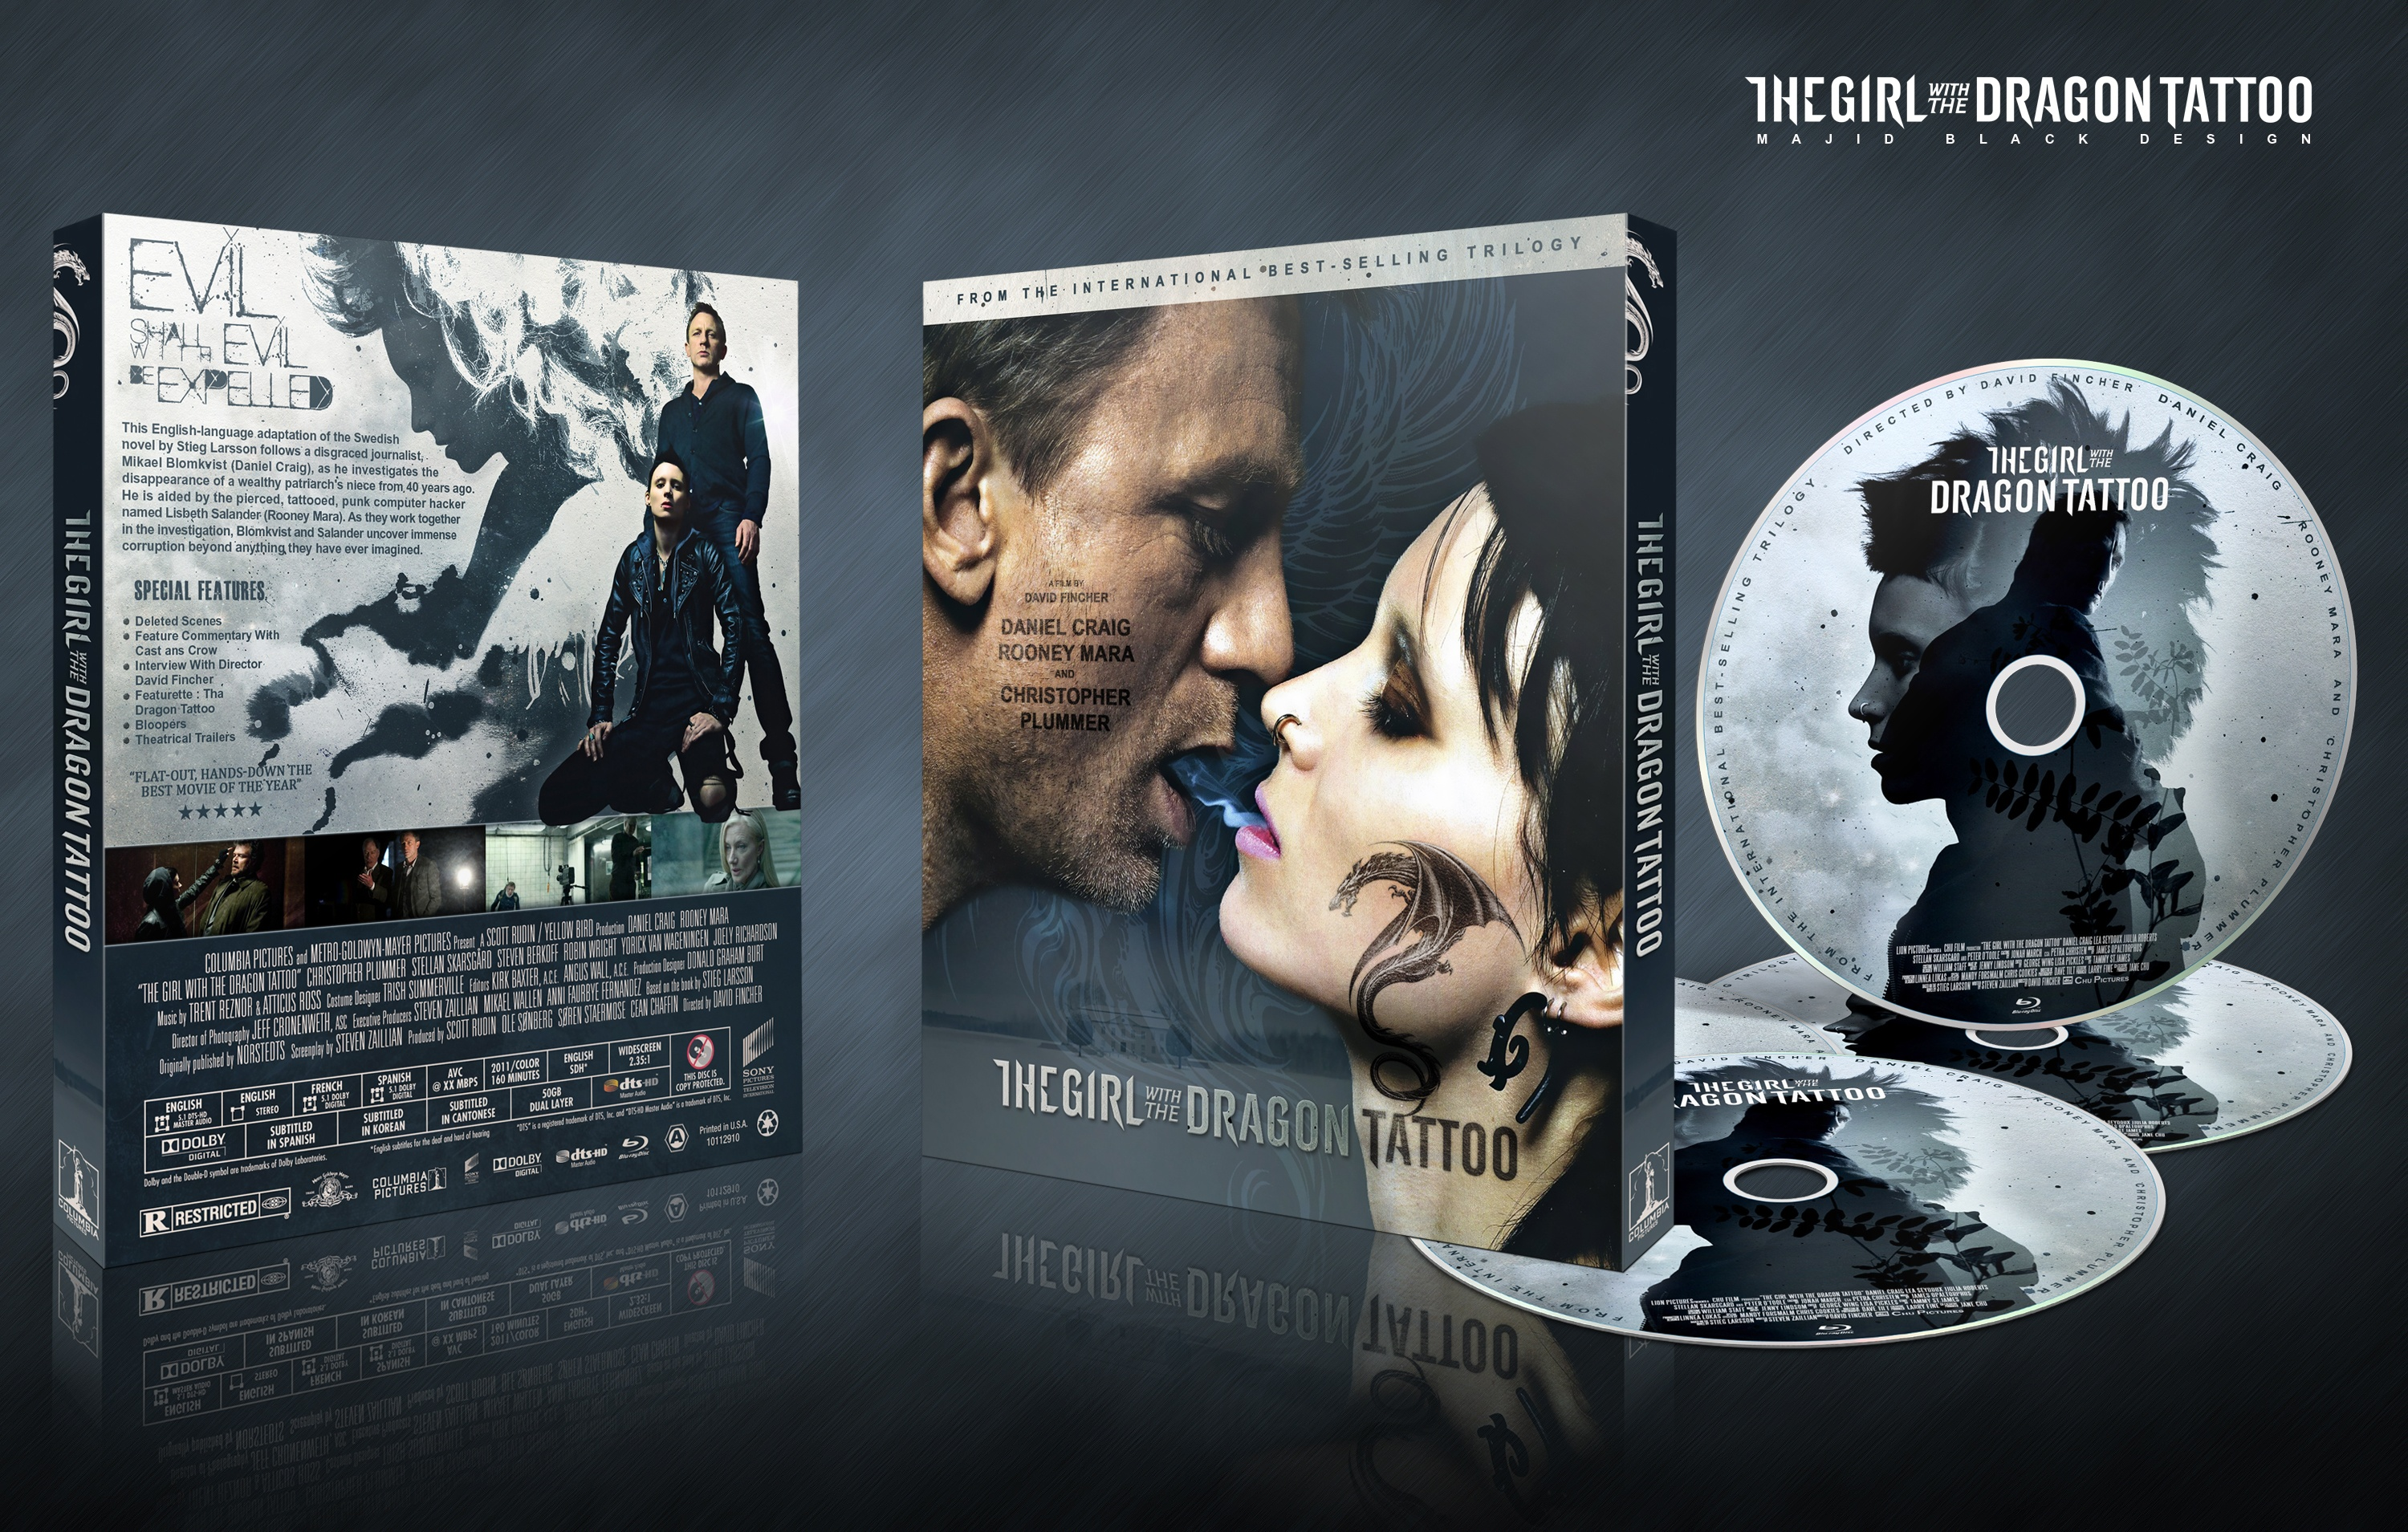 Girl with the dragon tattoo full movie for The girl with the dragon tattoo movies